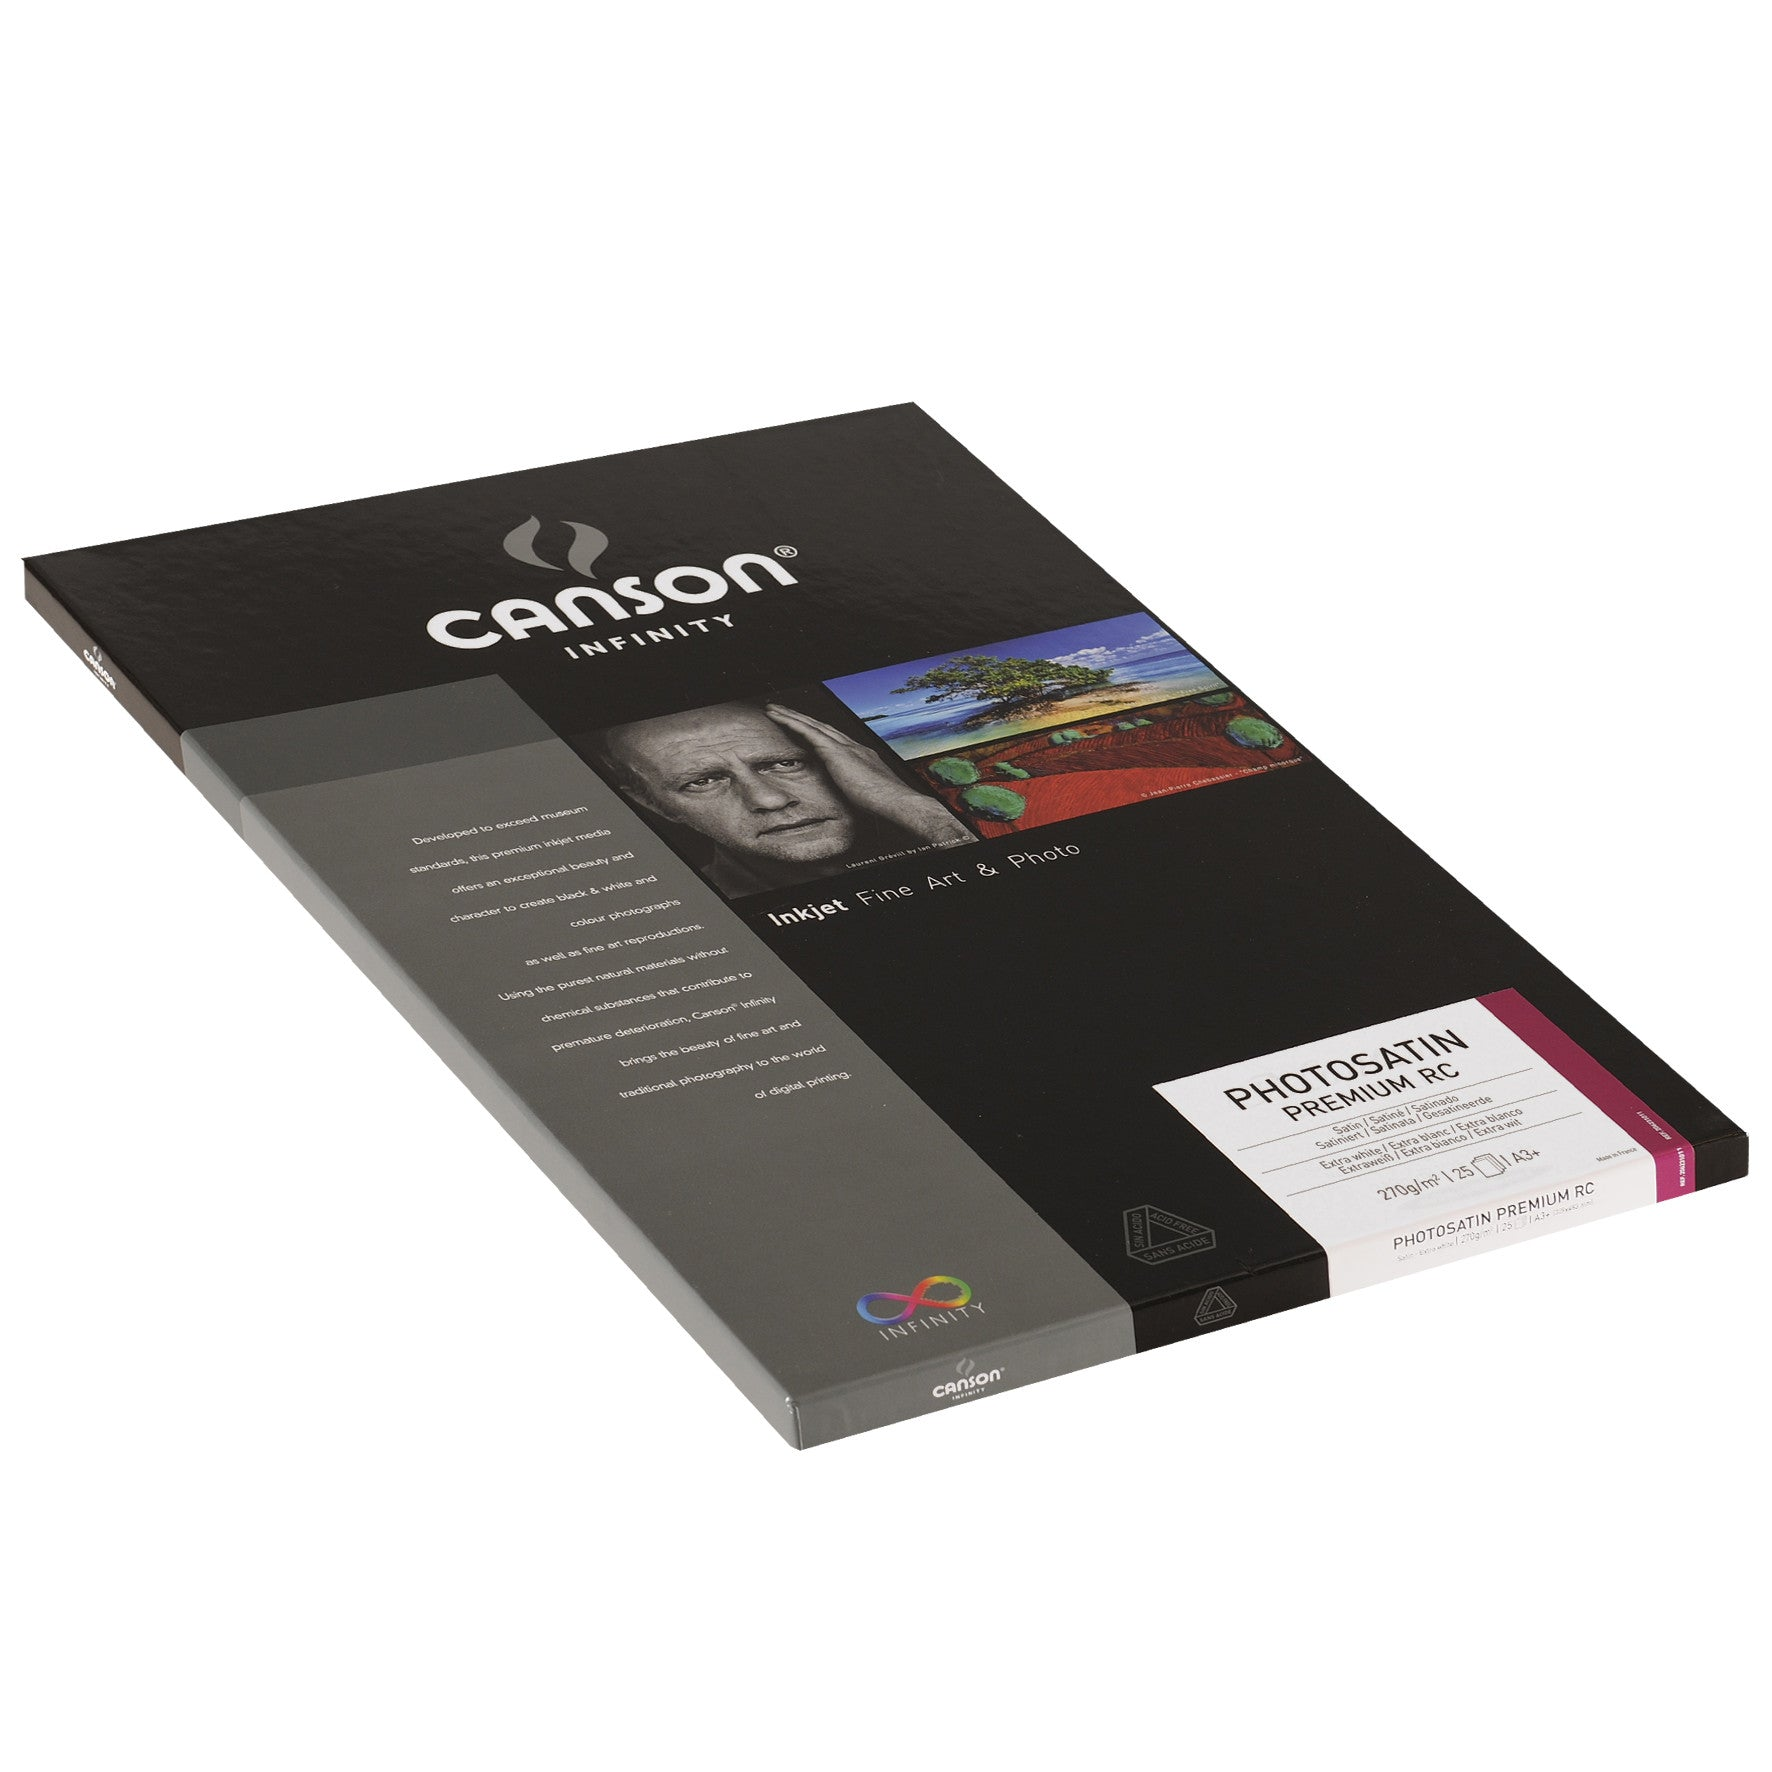 Canson Infinity Photo Satin Premium RC - 270gsm - A3+ - 25 sheets - Wall Your Photos